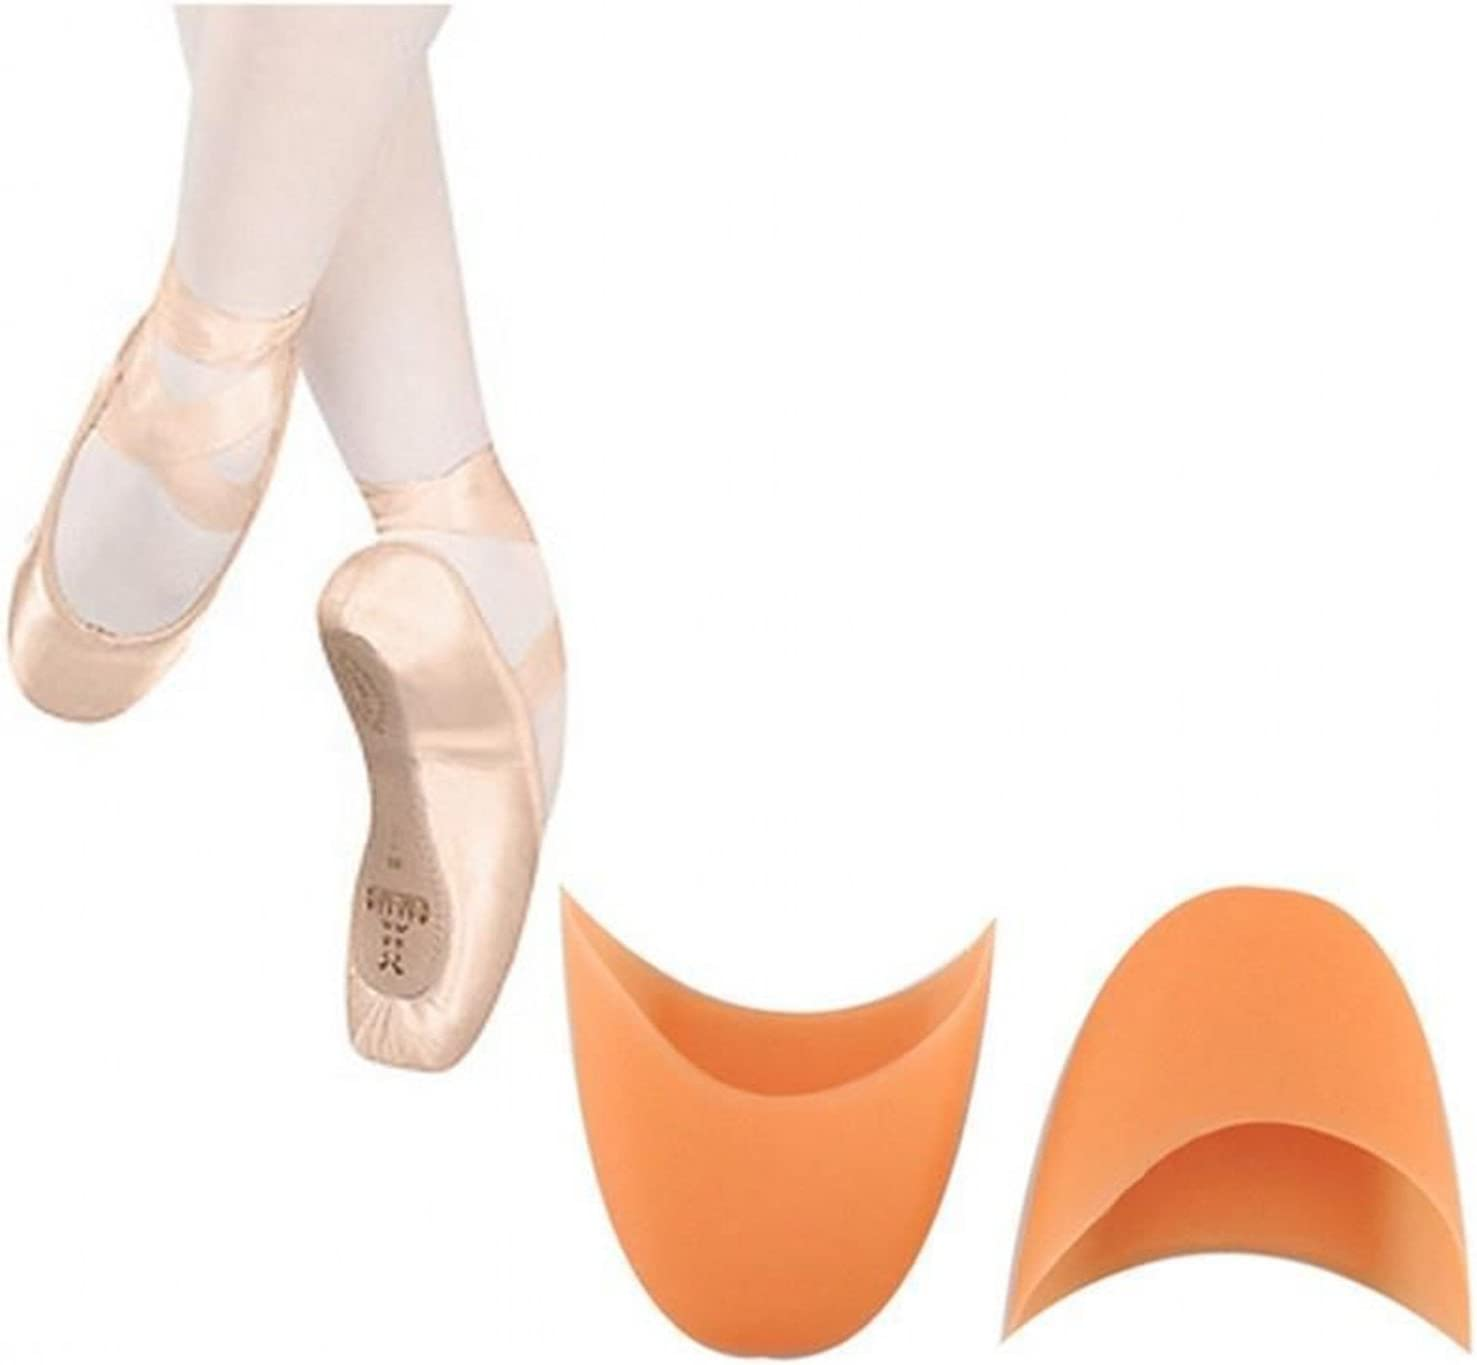 HiiBaby Silicone Gel Toe Pads Soft Cap Cover for Sales sale Protectors Luxury